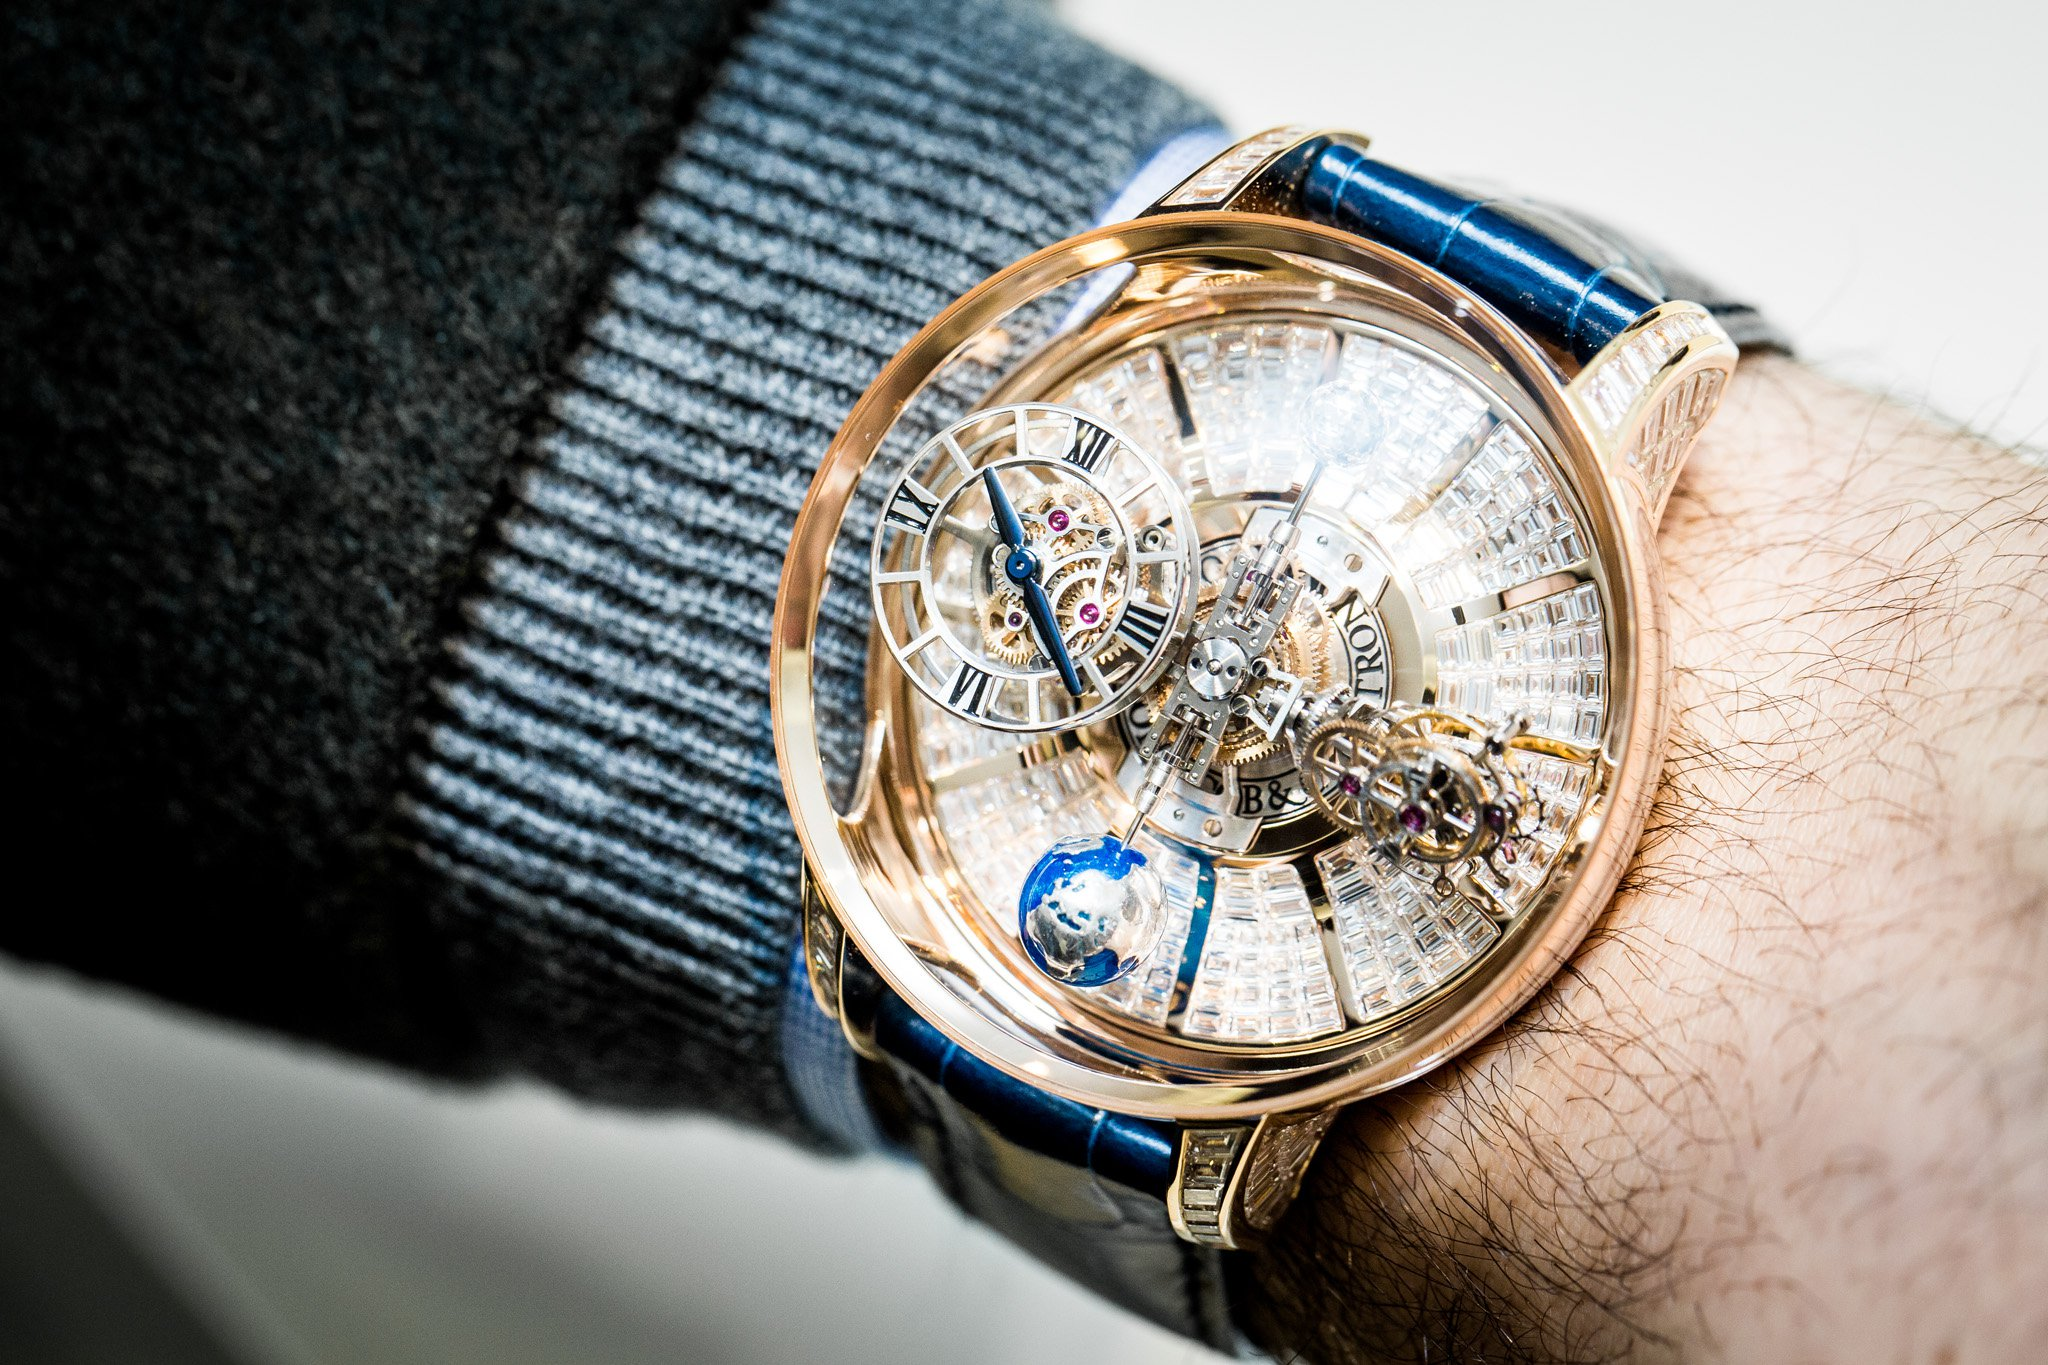 Jacob-Co-Astronomia-Tourbillon-Baguette-Watch-Baselworld-2015-Wrist